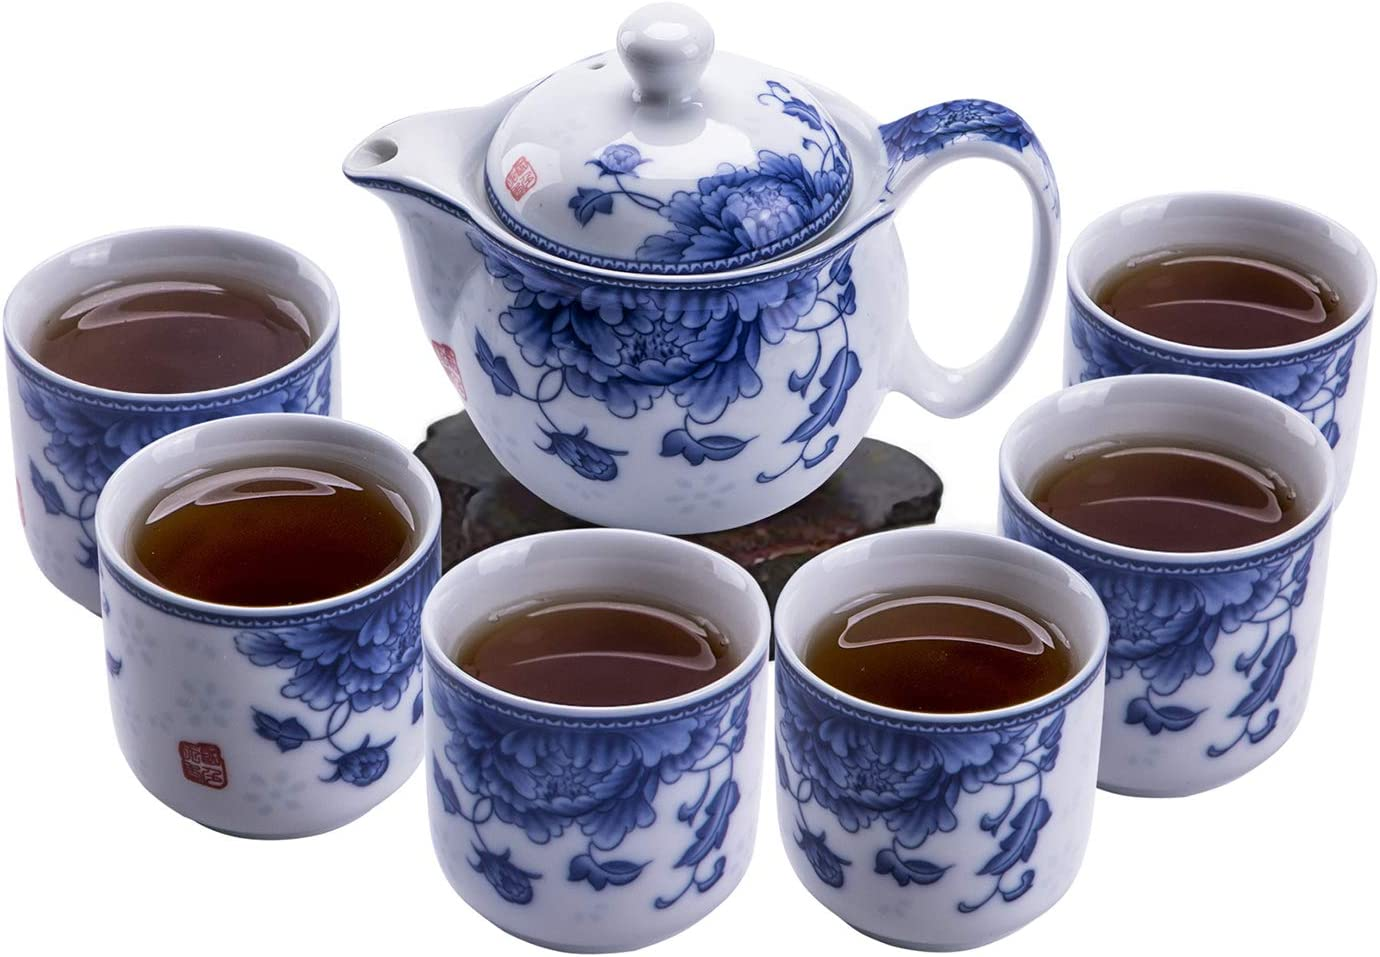 ufengke 7 Piece Chinese Super special price Kung Fu Animer and price revision White Set and Tea Porcelain Blue